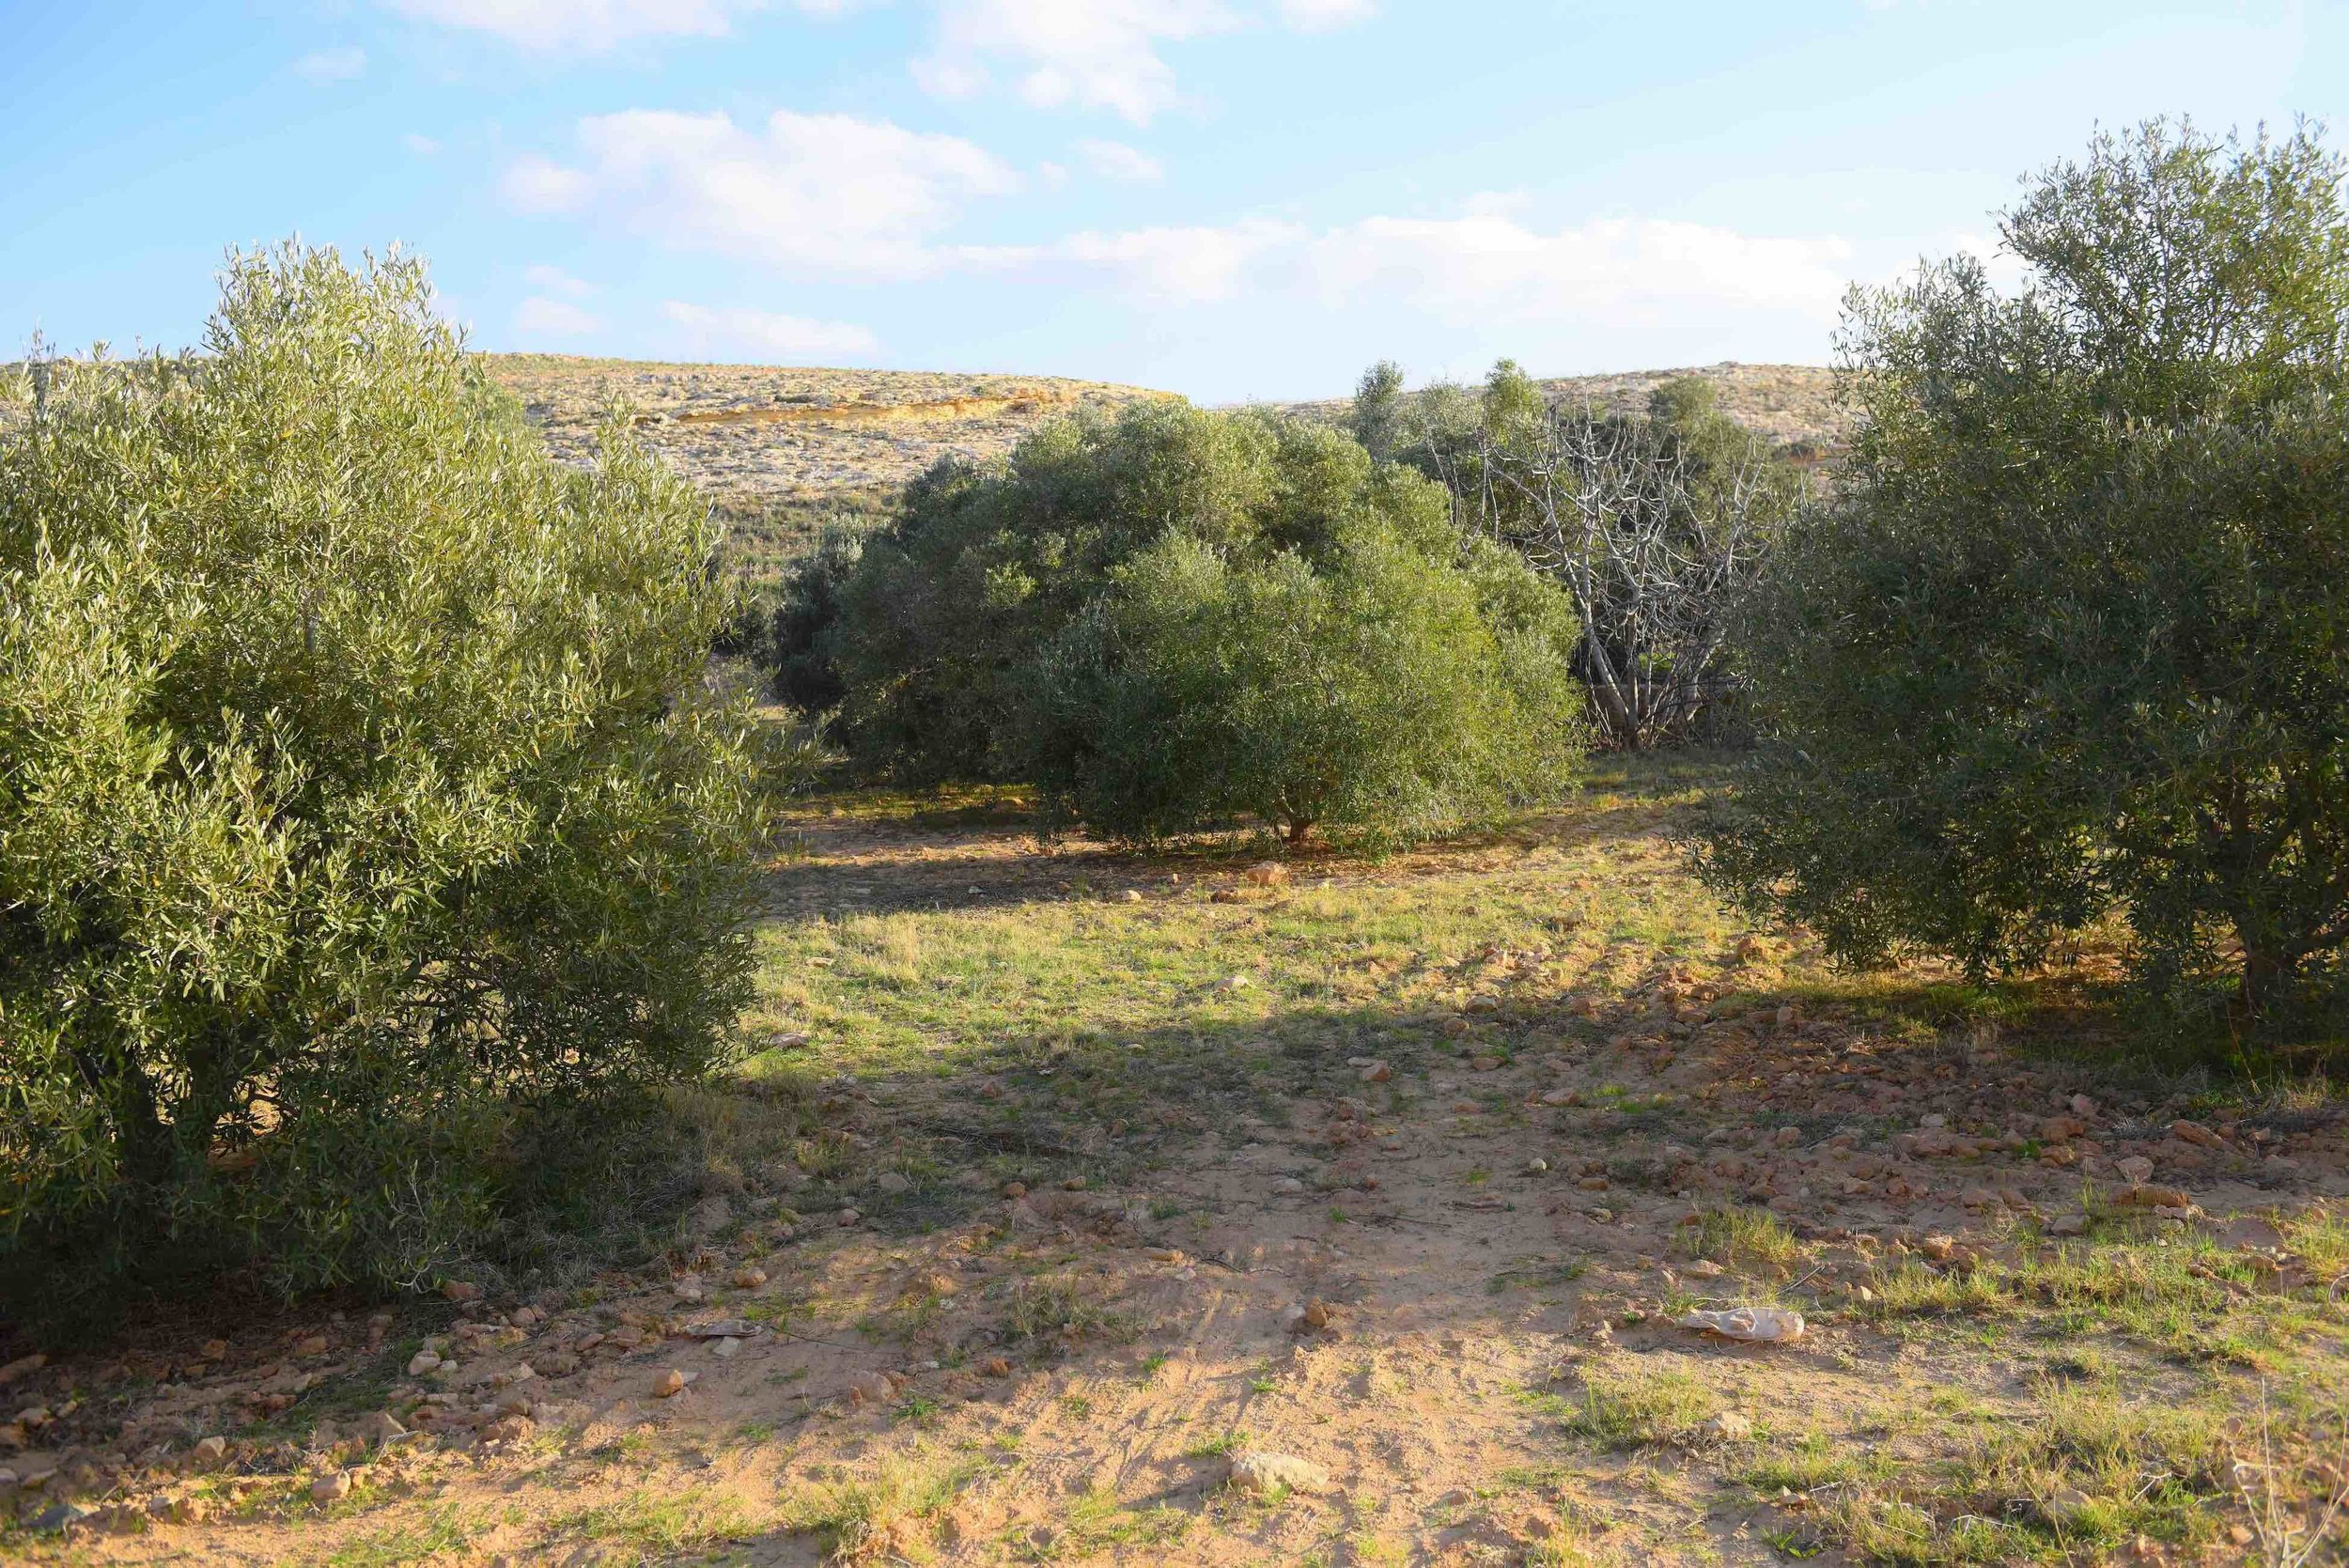 Trees planted over these valleys are olive, almond and fig